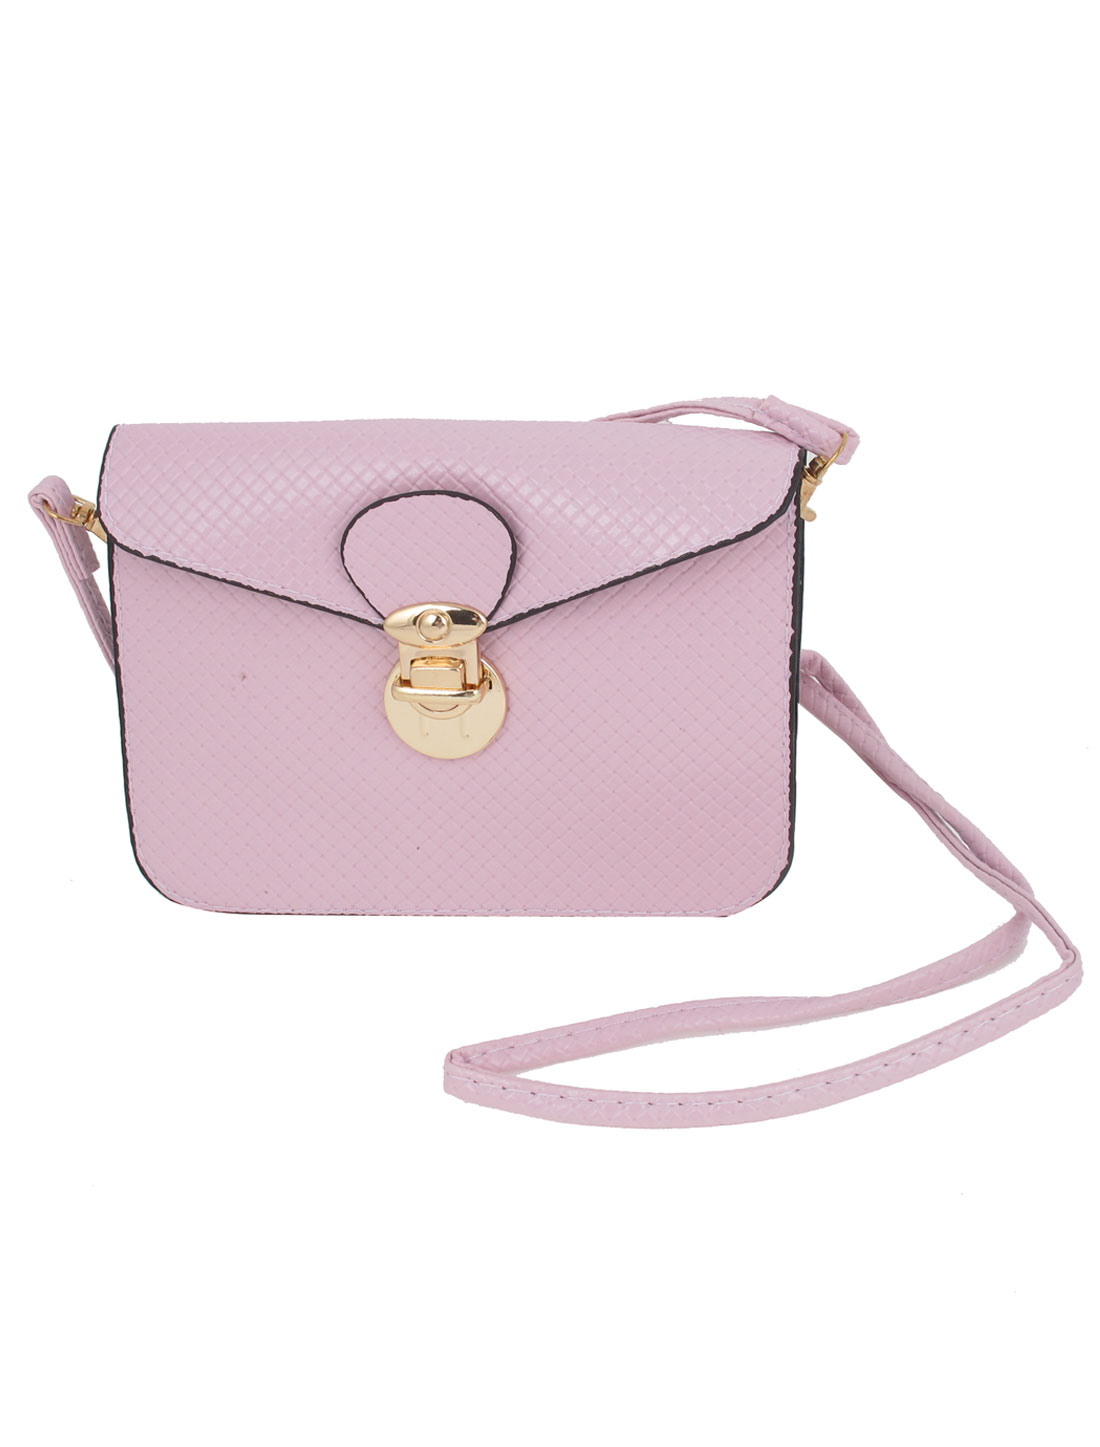 Light Purple Faux Leather 3 Layers Push Lock Closure Purse Handbag for lady